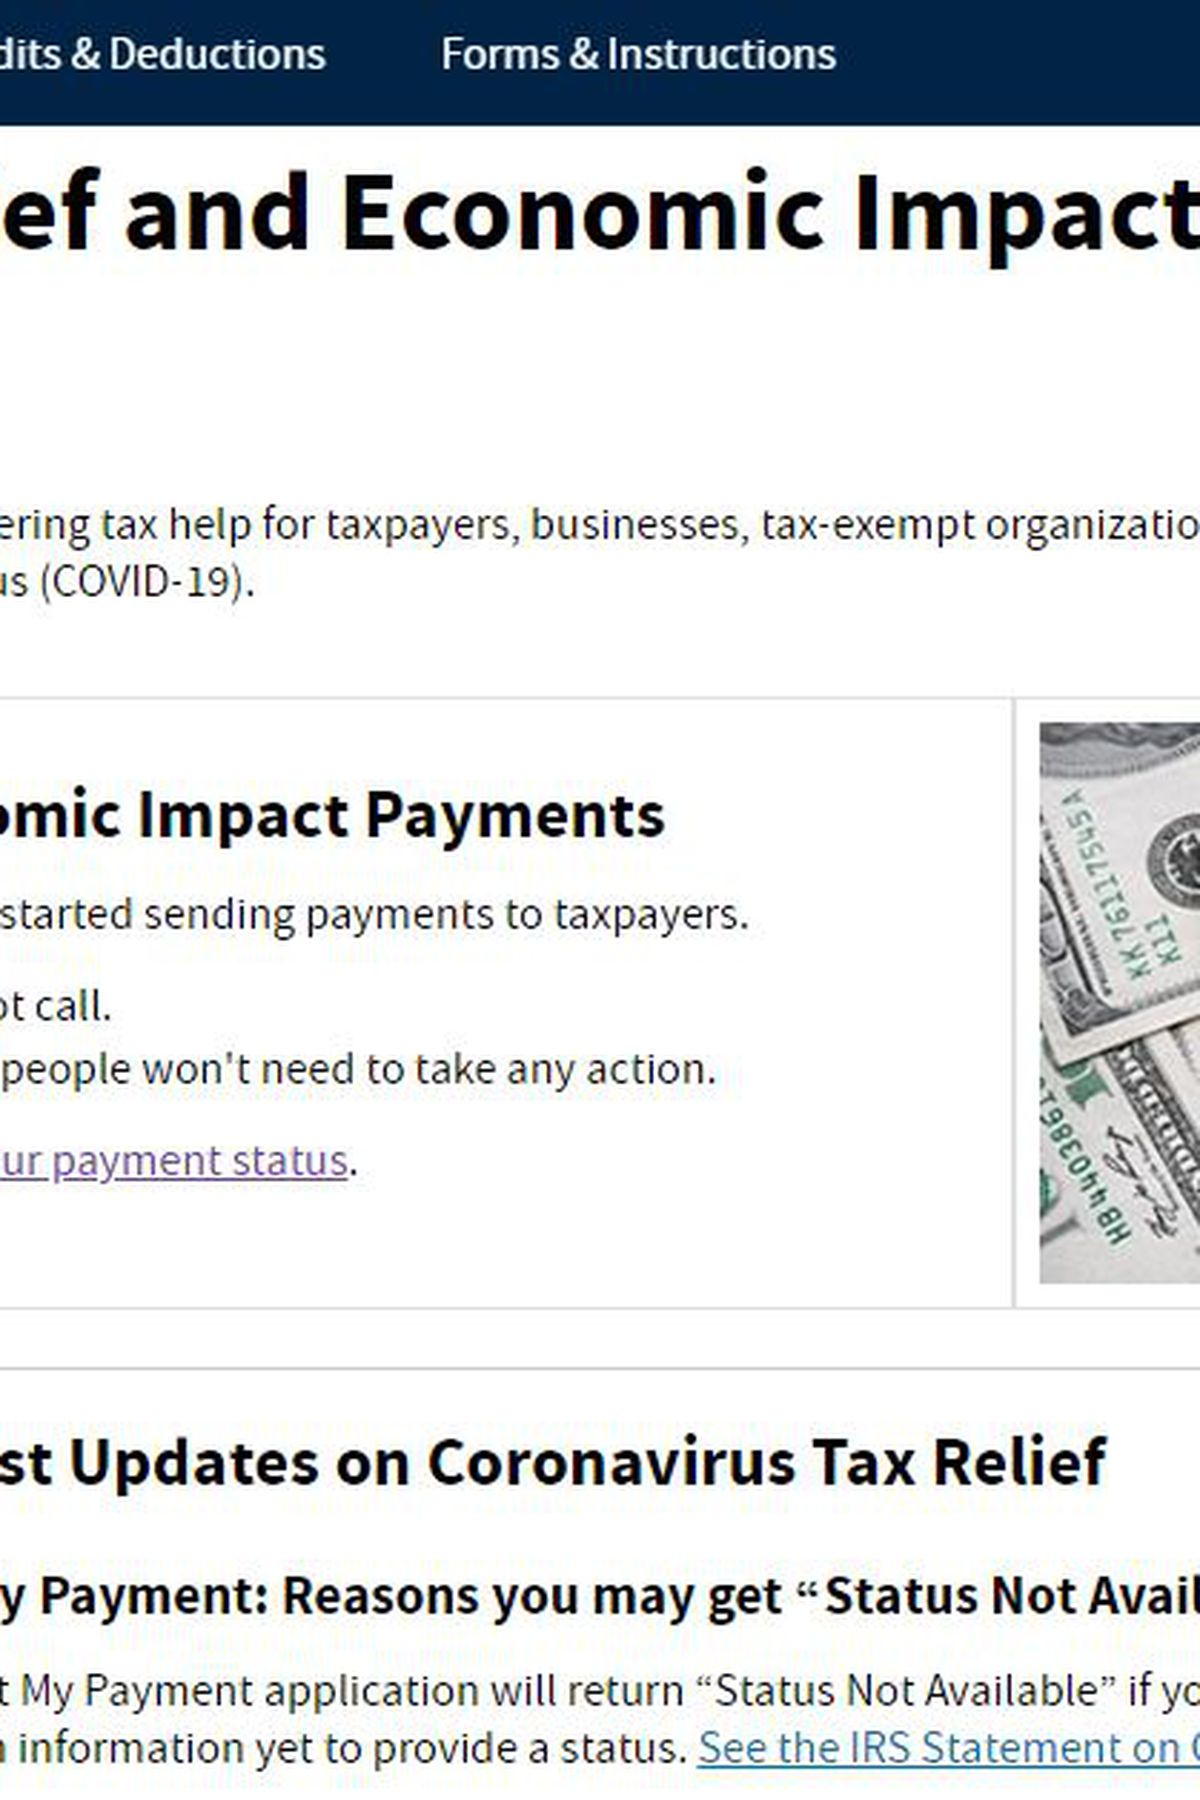 Have You Received Your Stimulus Payment